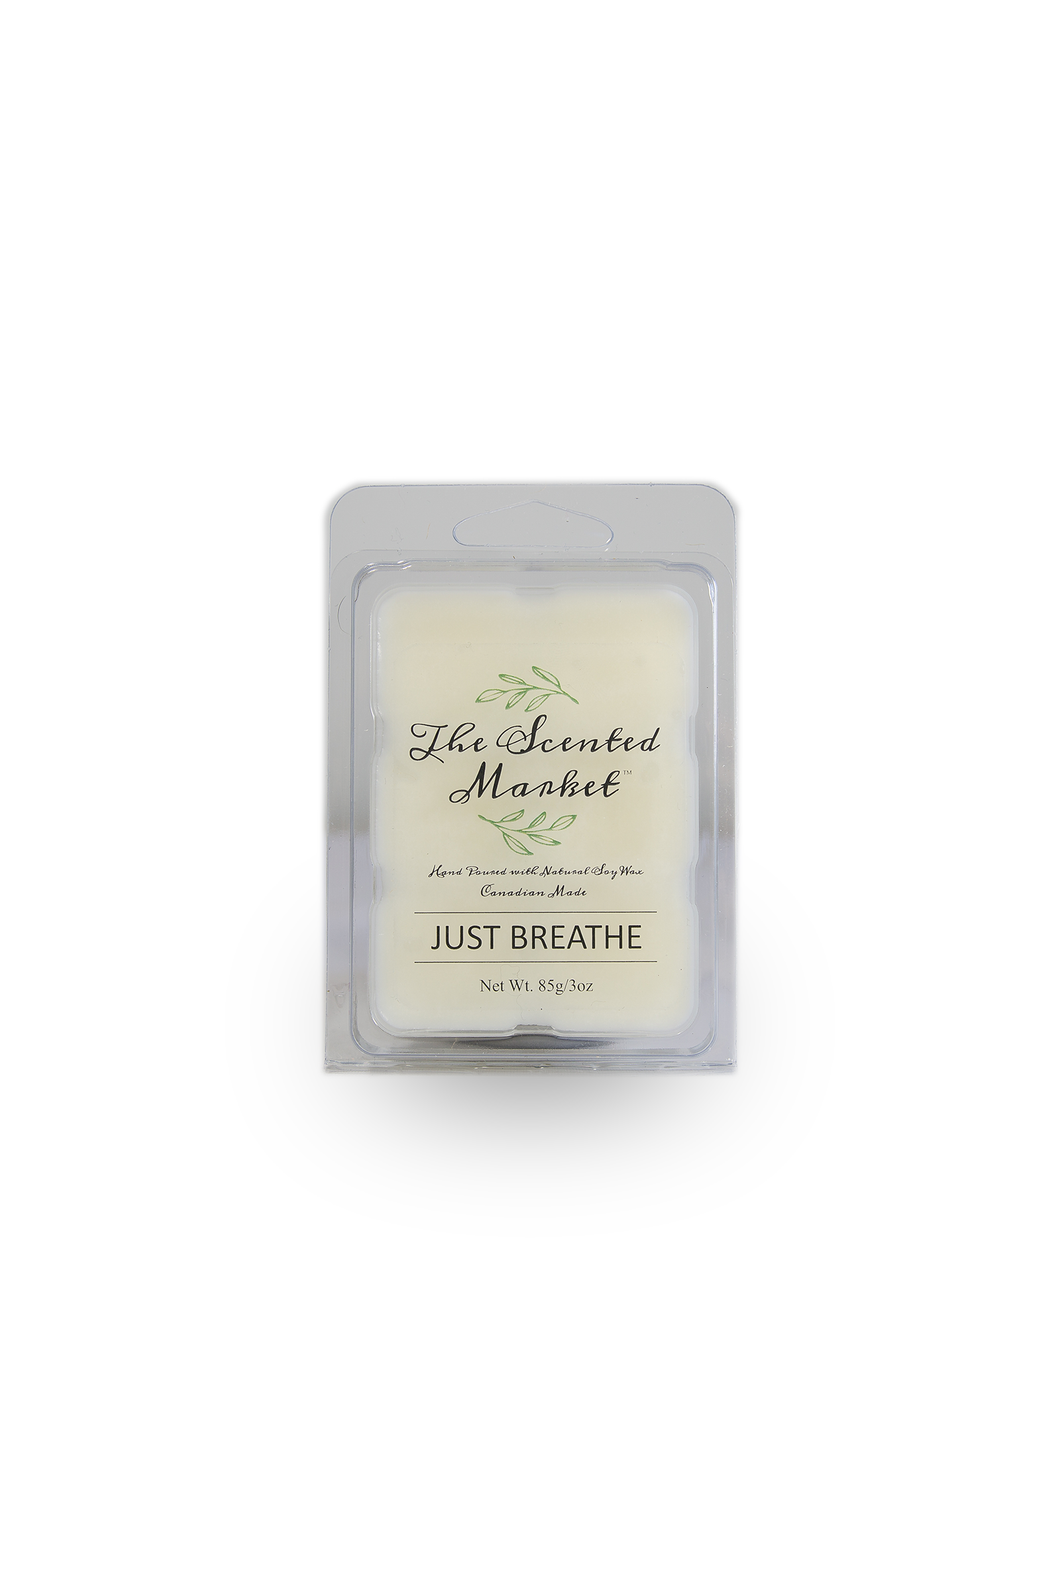 JUST BREATHE SOY WAX MELT